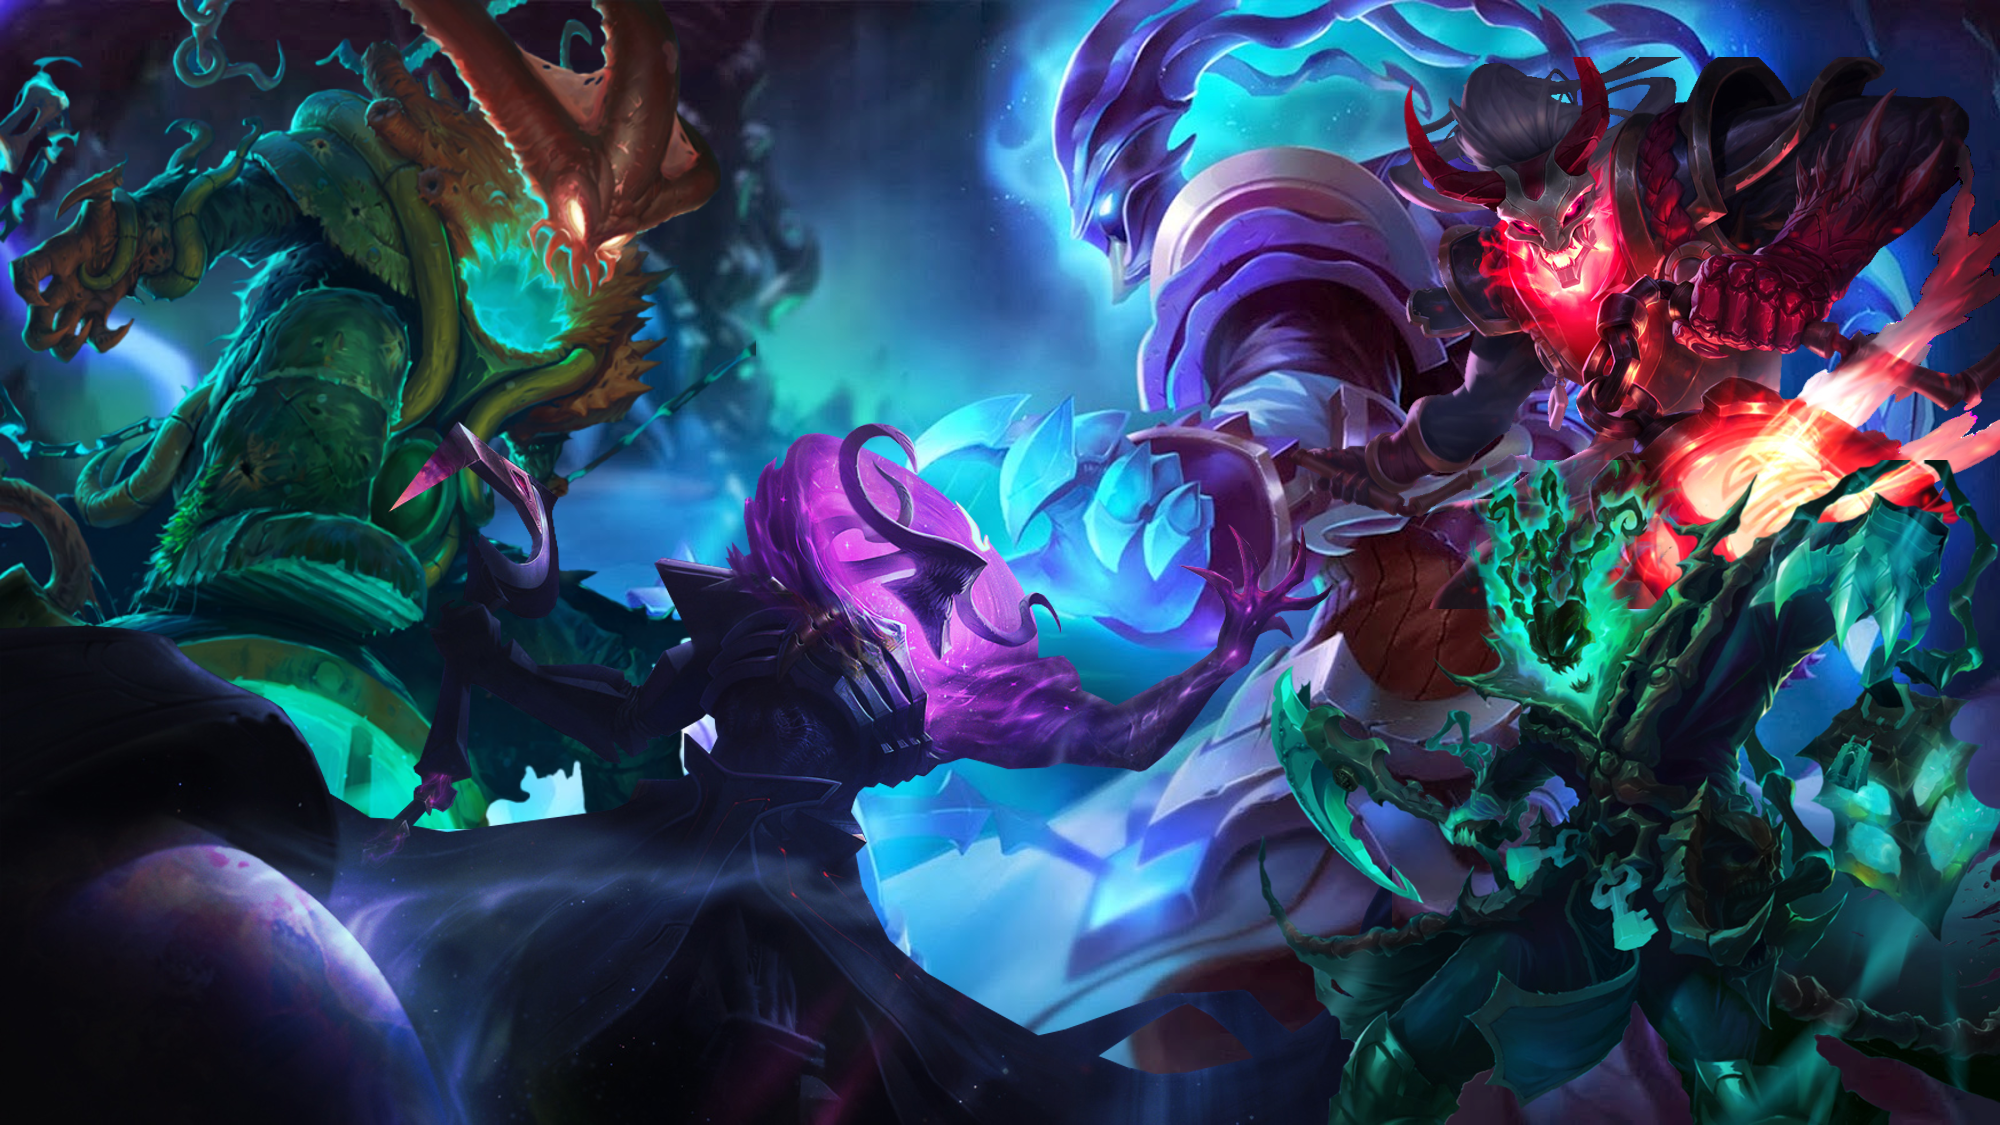 Thresh wallpaper by reihinox on deviantart for Deviantart wallpaper